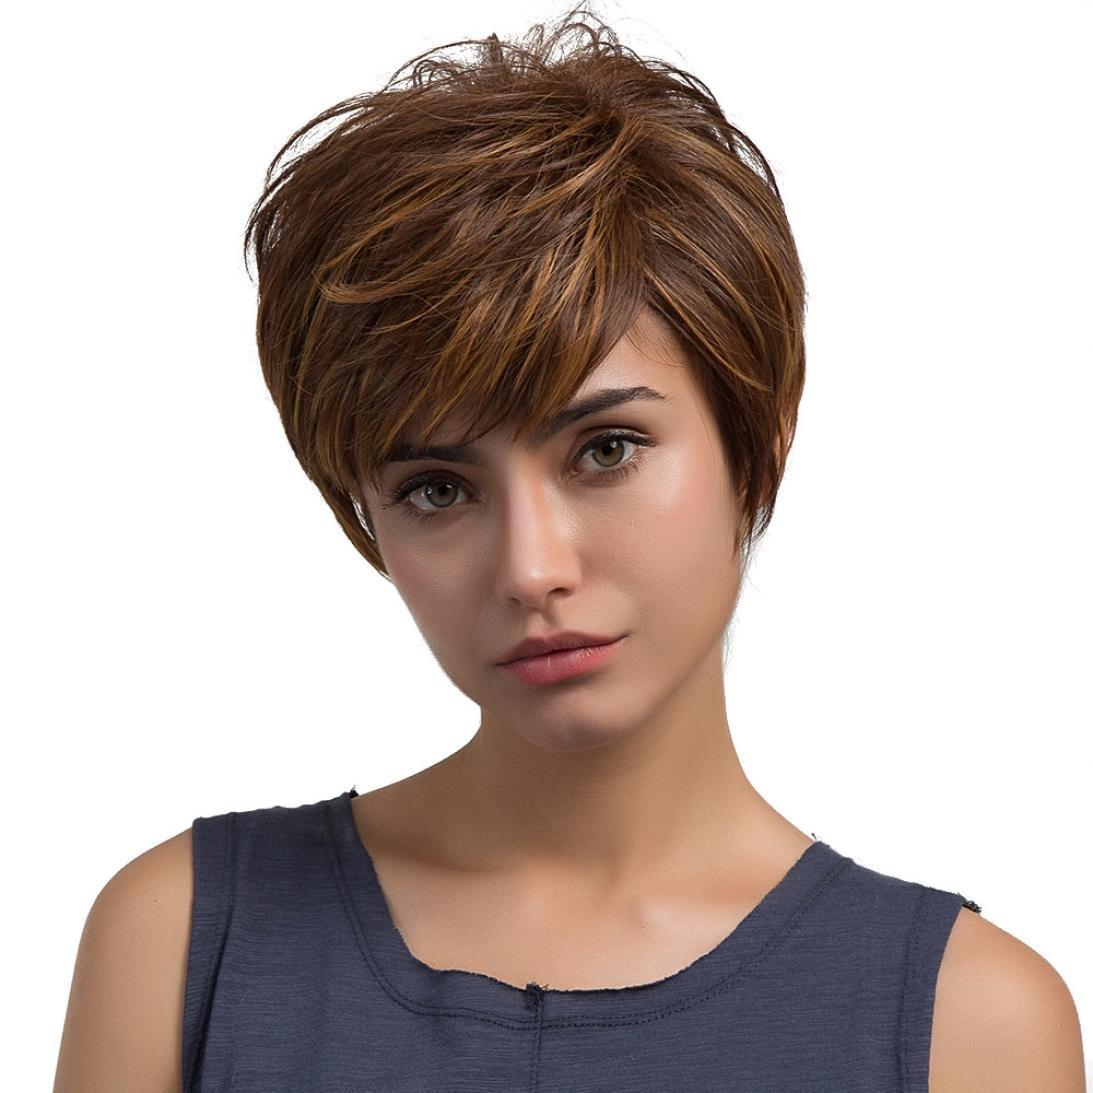 Hechun Natural Light Brown Straight Short Hair Wigs Short Women's Fashion Wig New Good Mood Every Day for Theme Party Performance KTV (Brown) by Hechun